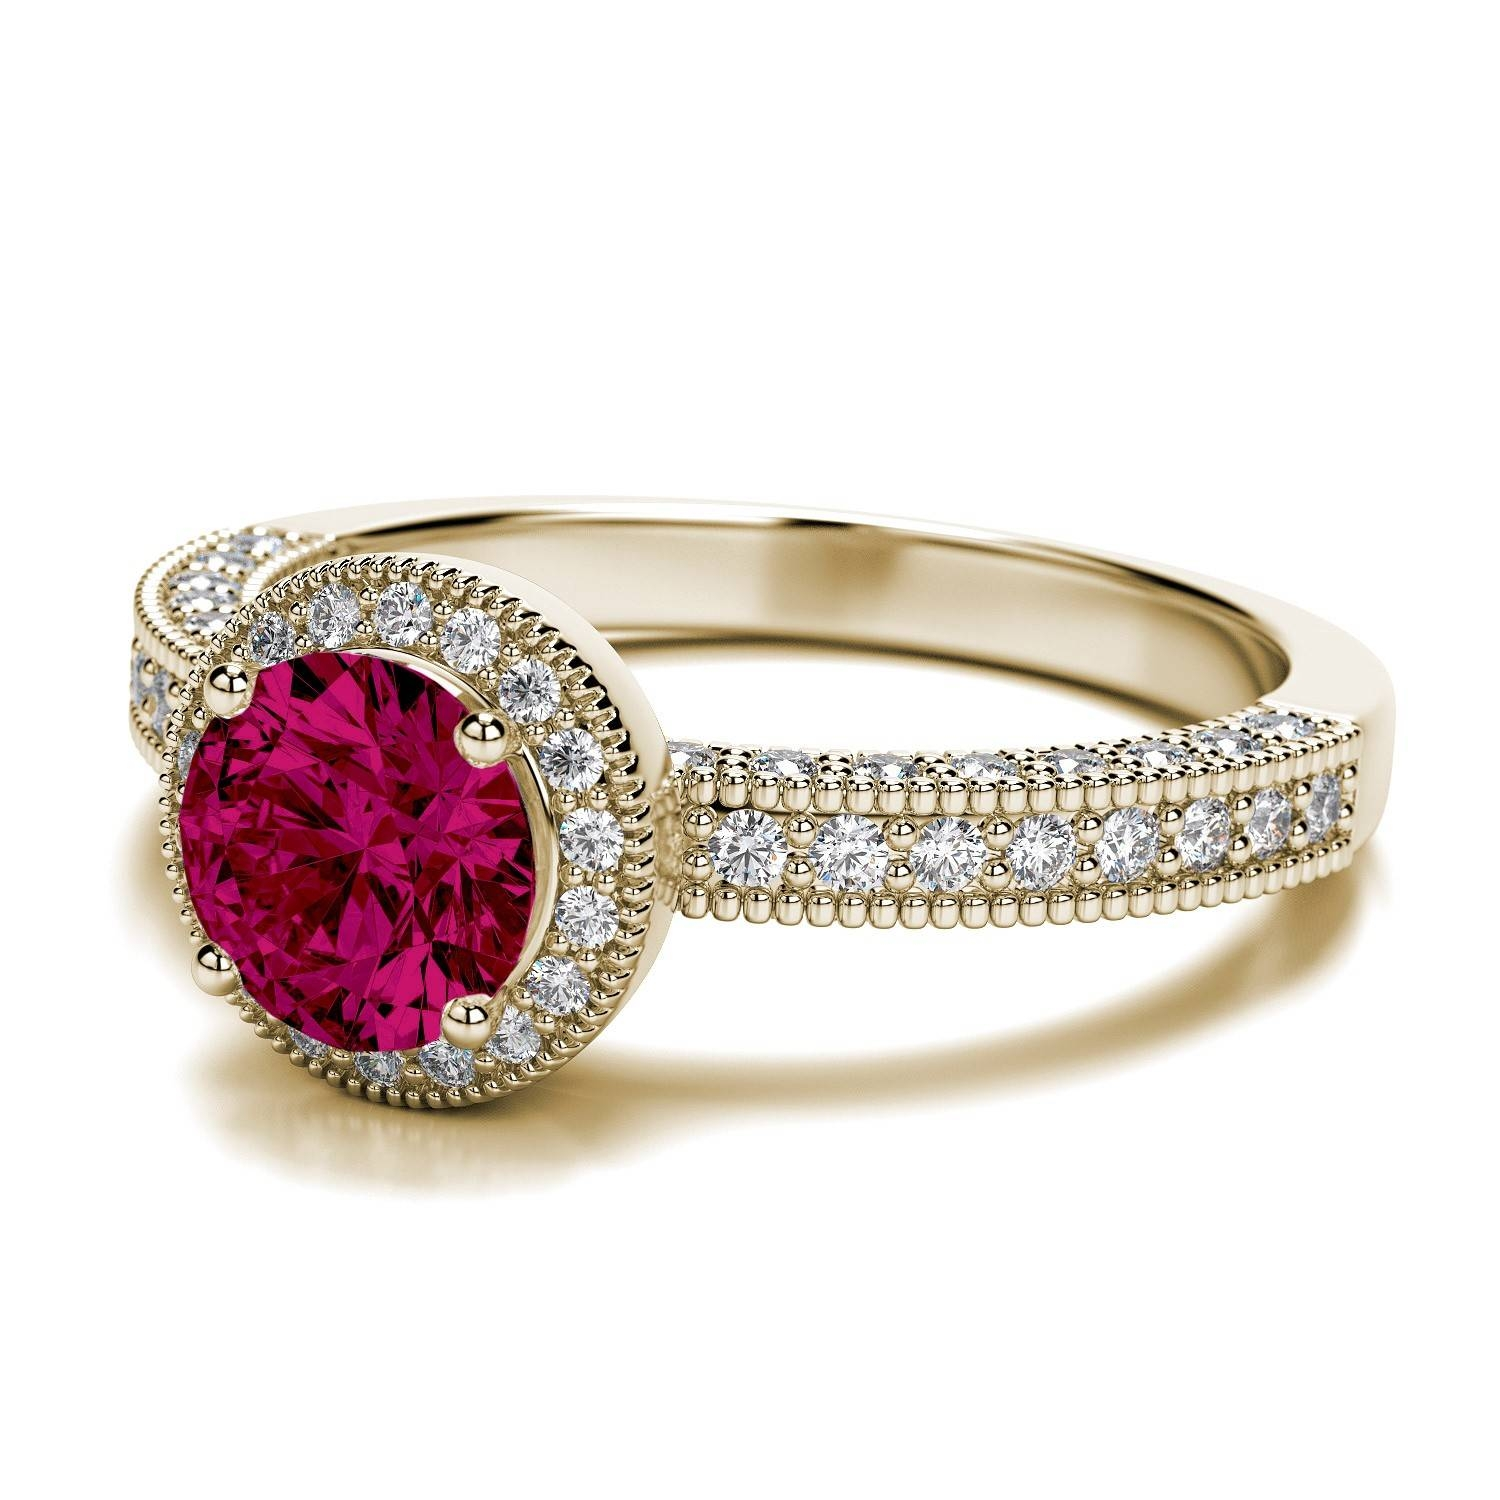 6Mm Ruby And Diamond Vintage Gemstone Ring In 14K Yellow Gold In Gold And Ruby Engagement Rings (View 1 of 15)